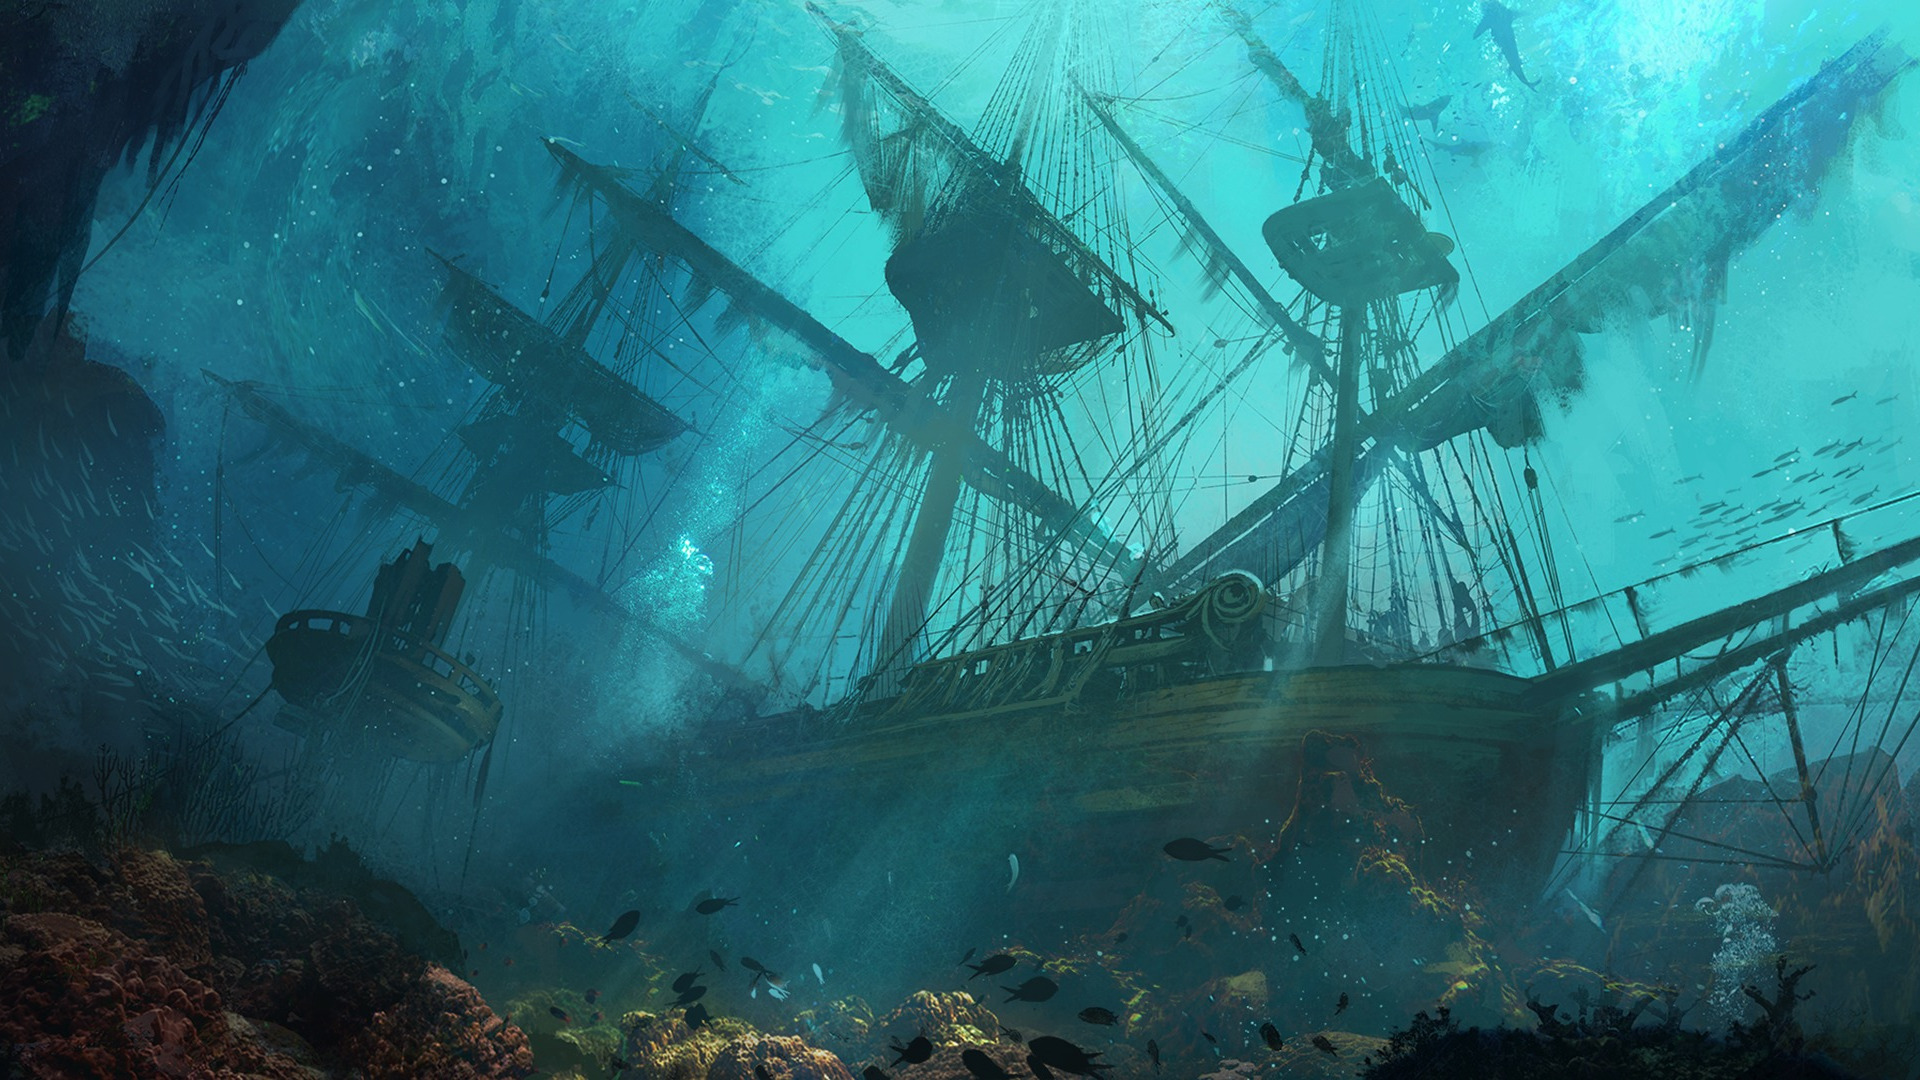 Artwork, shipwreck, underwater wallpapers hd / desktop and m.